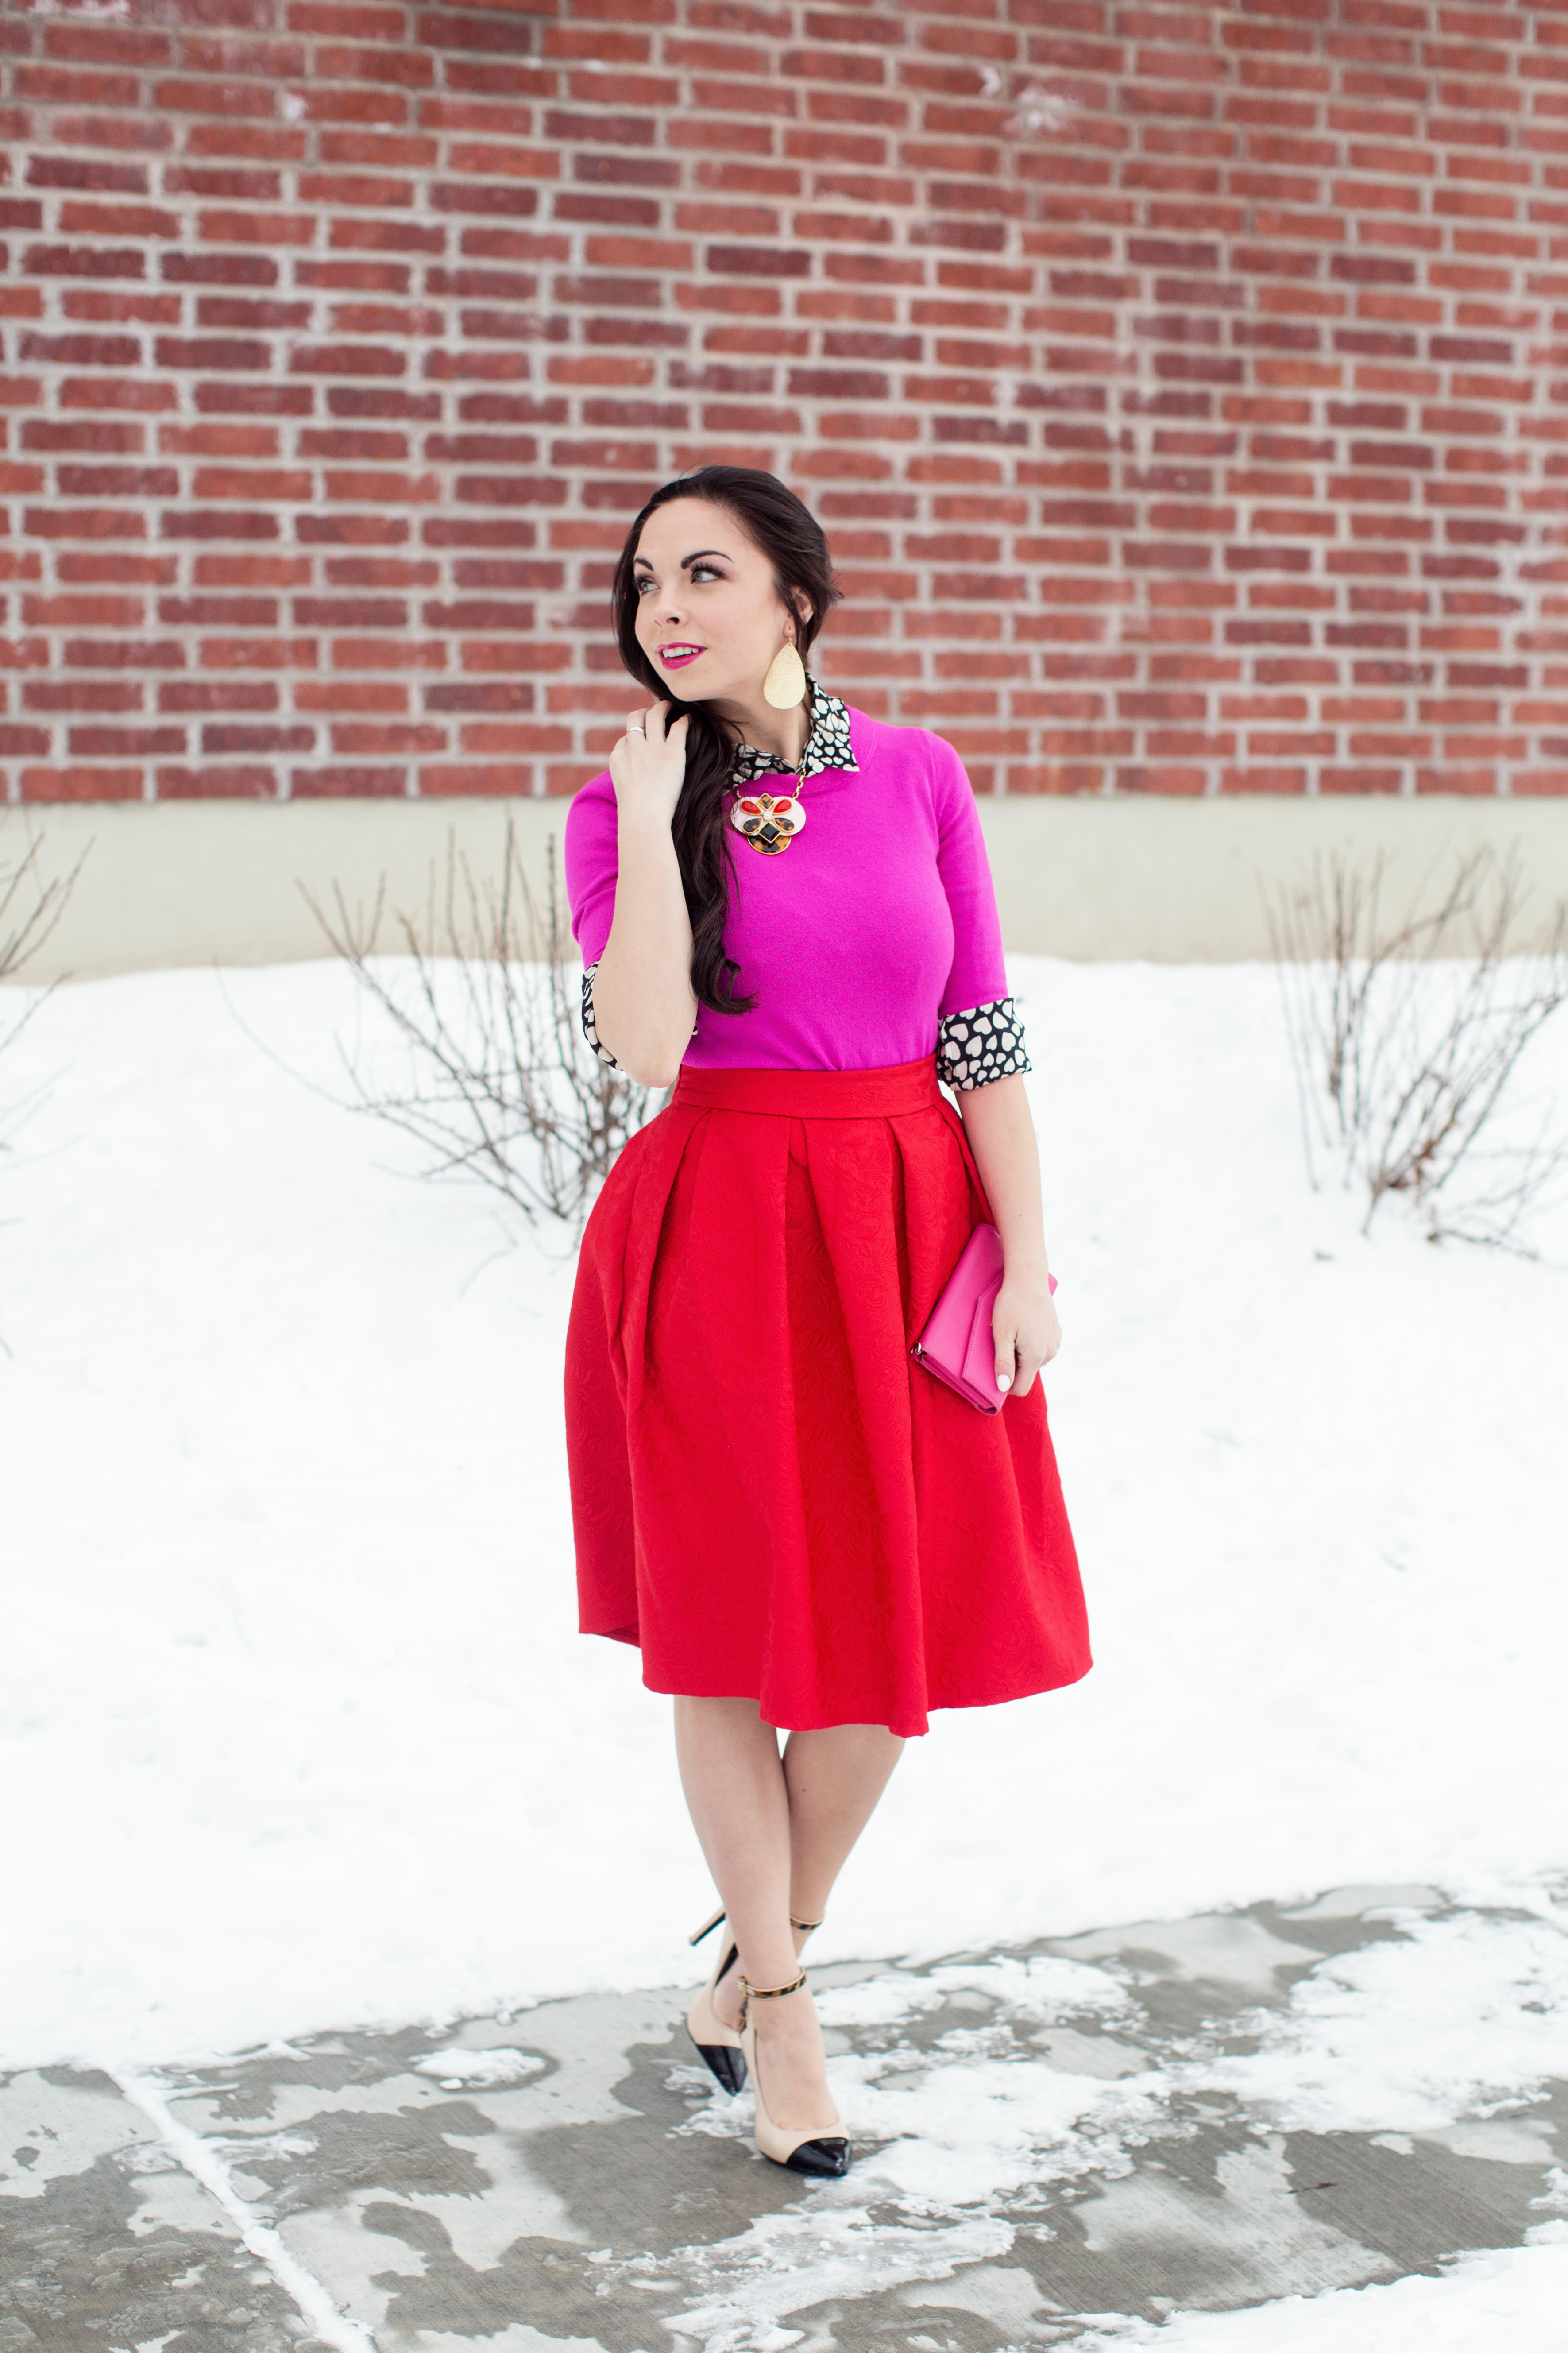 Quot Queen Of Hearts Quot Kate Spade Inspired Modest Valentine S Day Look Modest Goddess